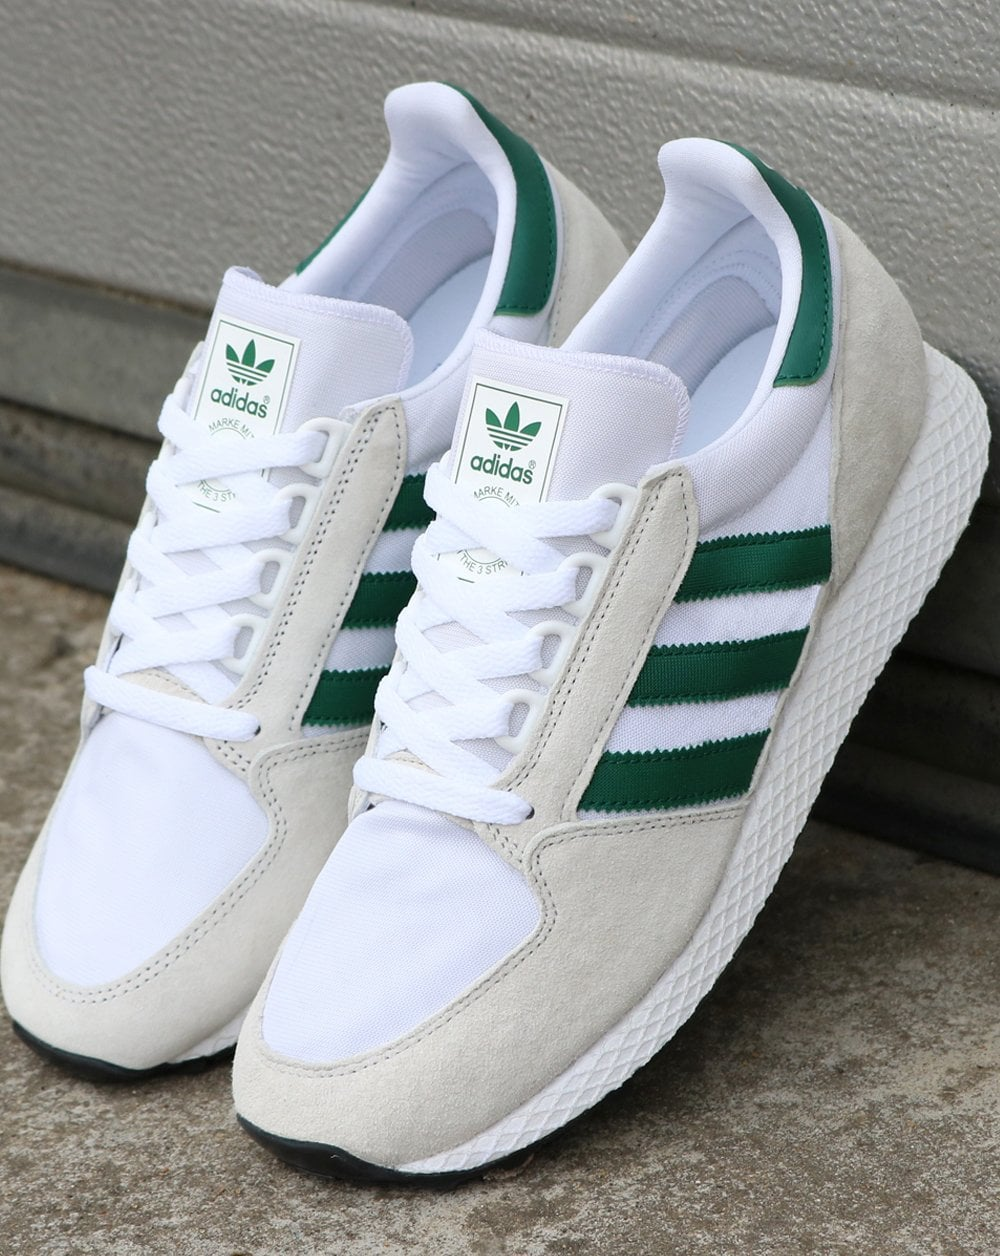 Adidas Forest Grove Trainers, White